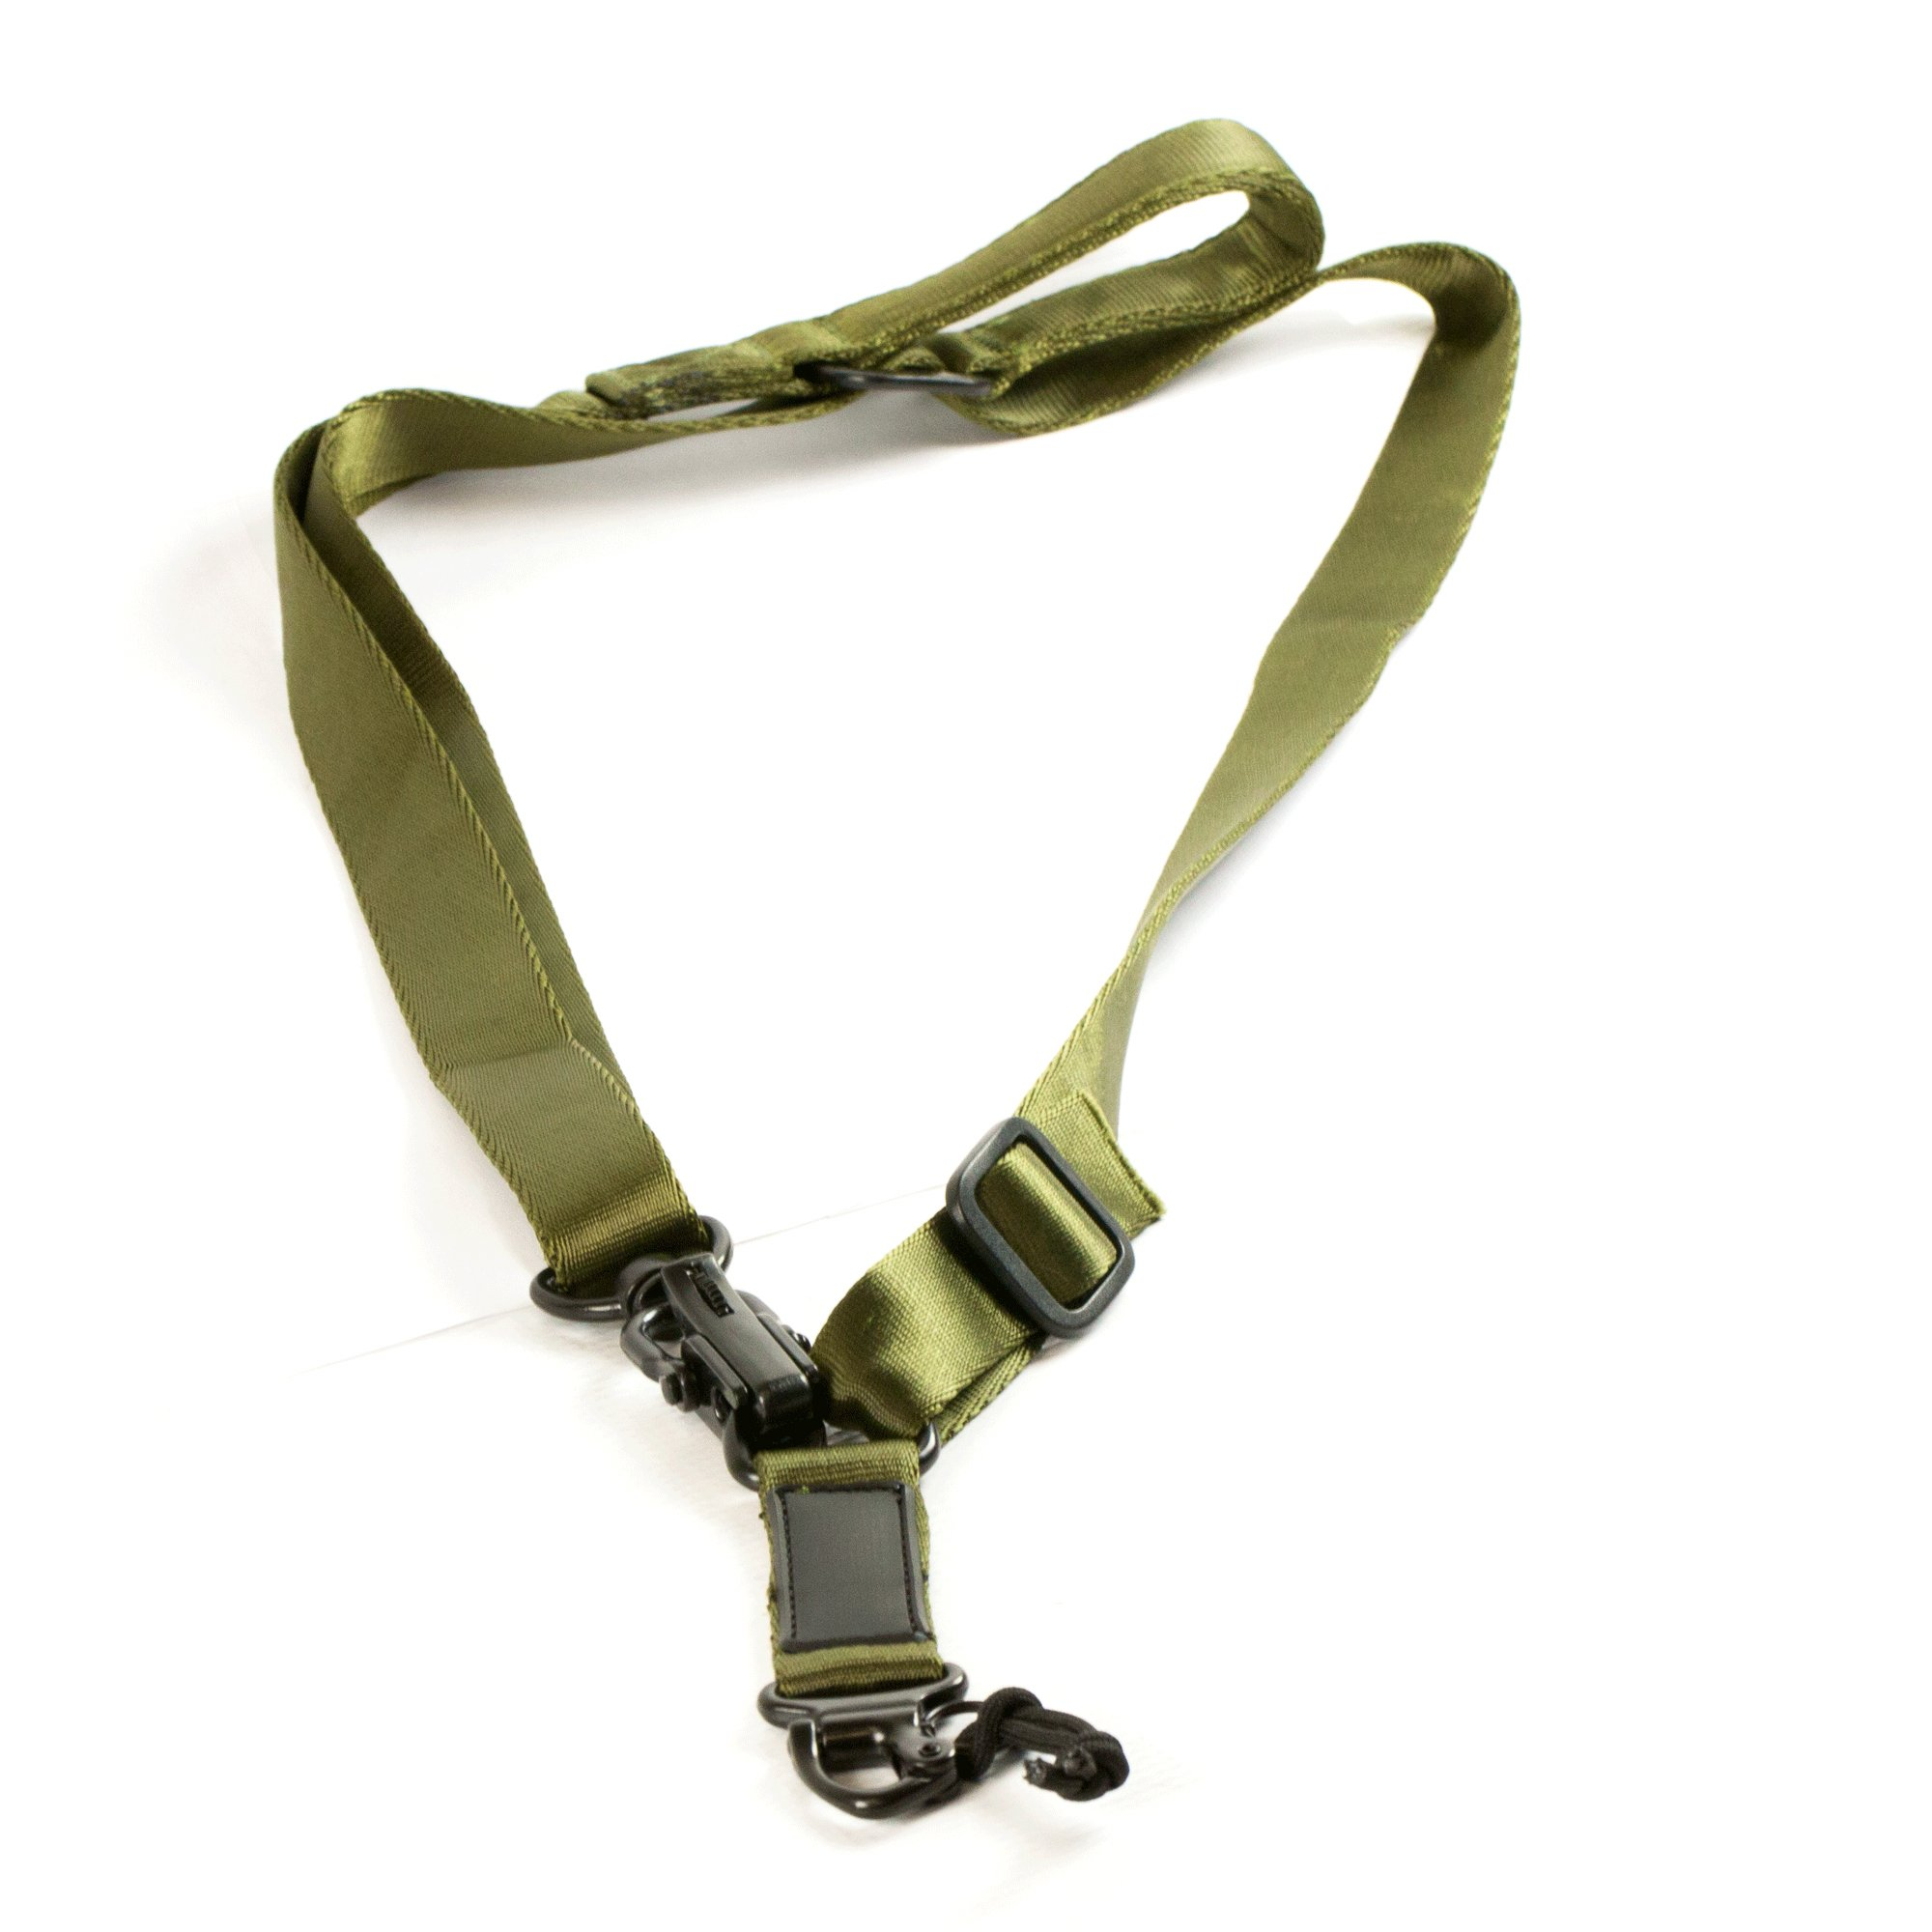 Hunter Select US Tactical Safety Two Points Outdoor Belt Carbine Sling Adjustable Strap, Quick Action Adjustment Systems (Green) by Hunter Select US